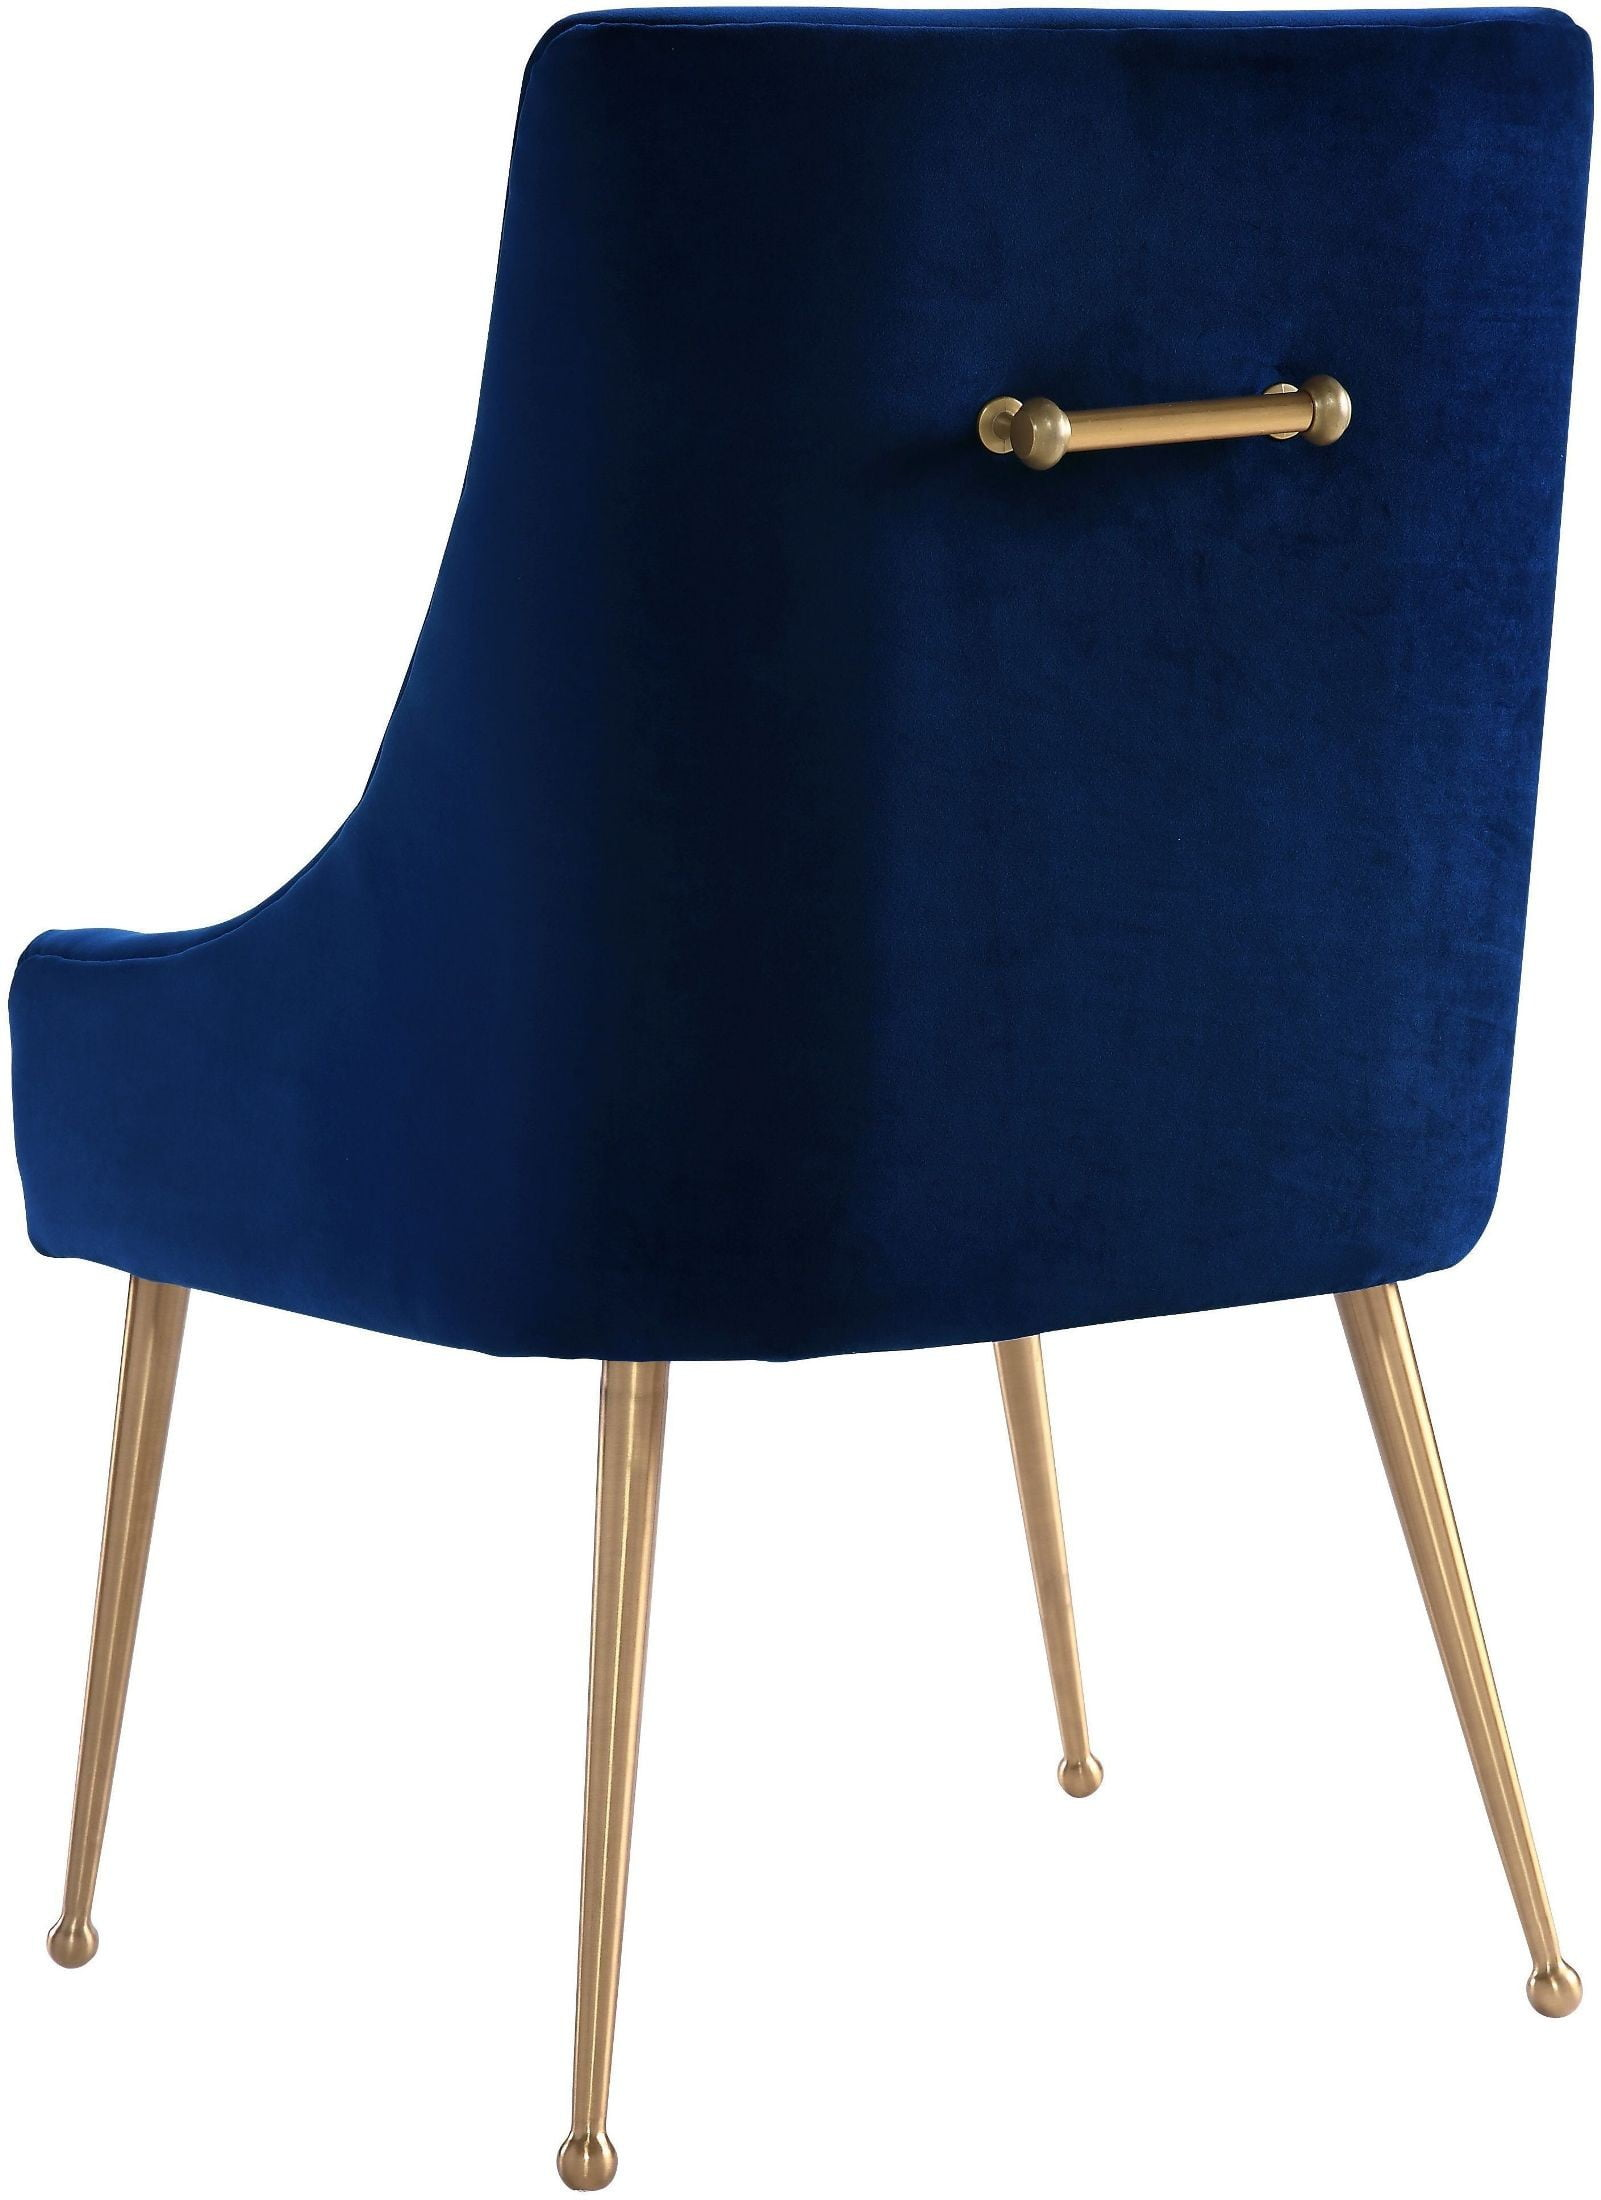 navy blue dining chairs set of 2 refinish rocking chair beatrix velvet side d48 tov furniture